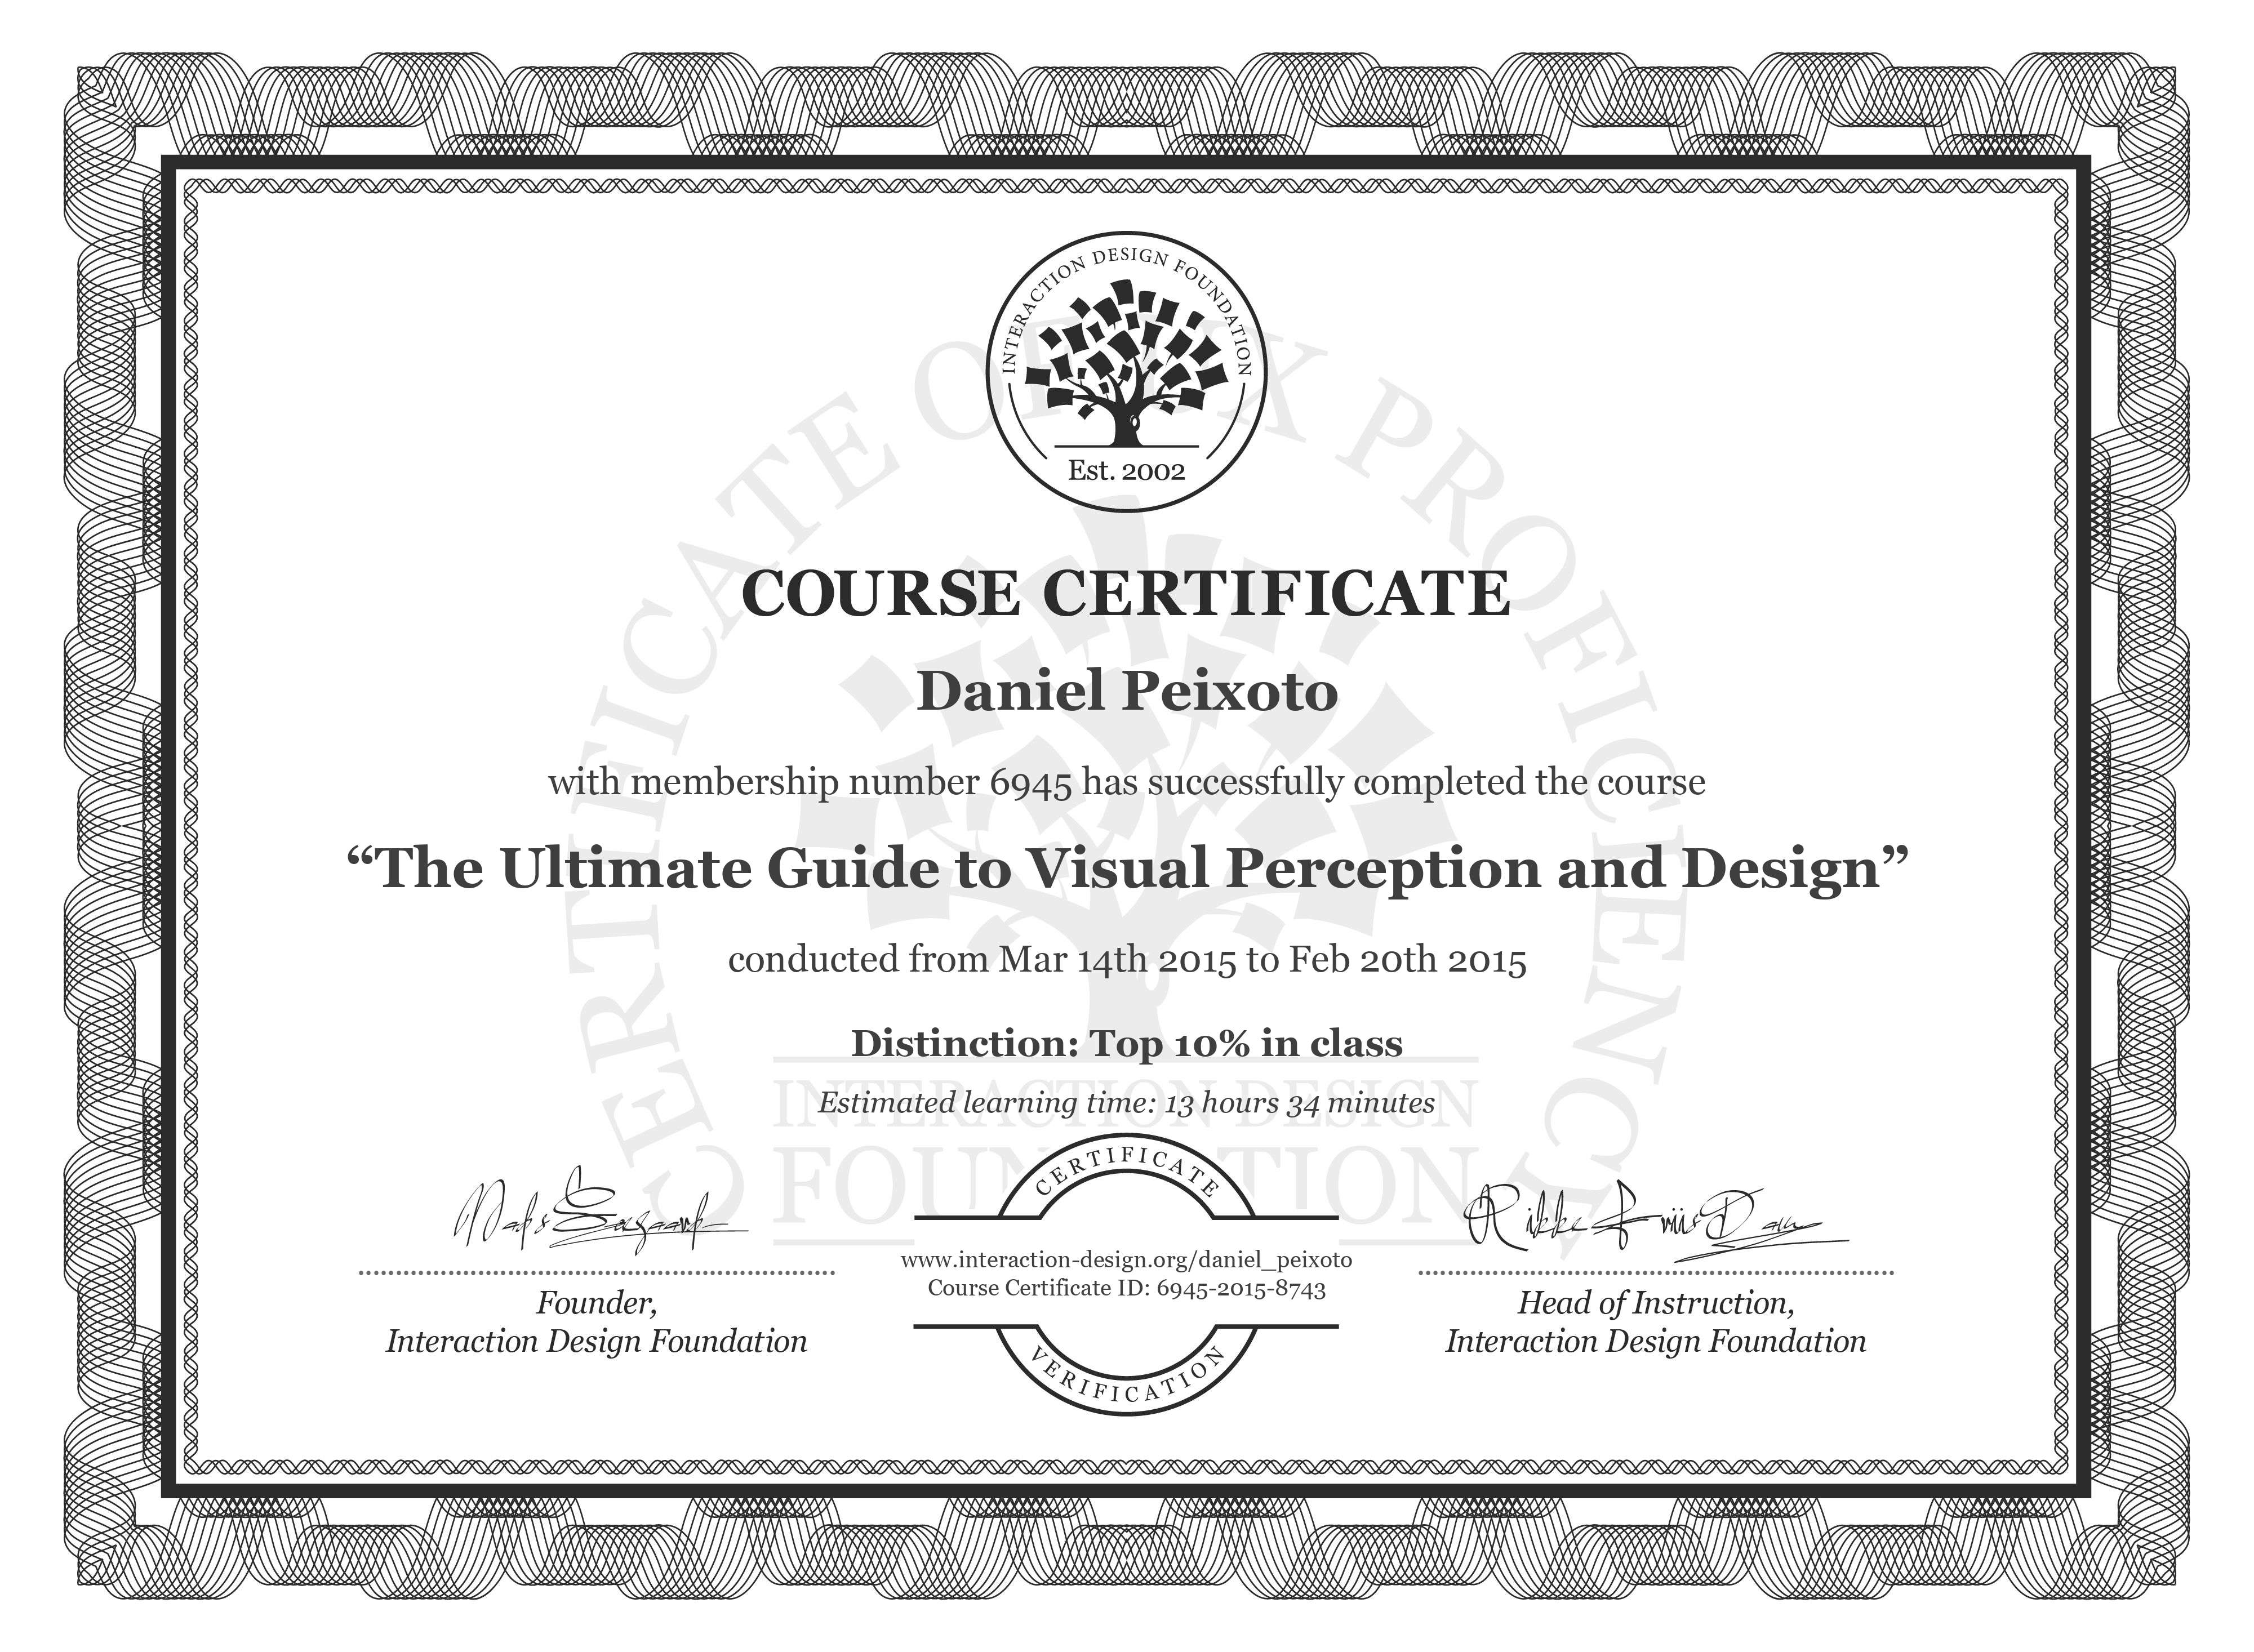 Daniel Peixoto's Course Certificate: The Ultimate Guide to Visual Perception and Design